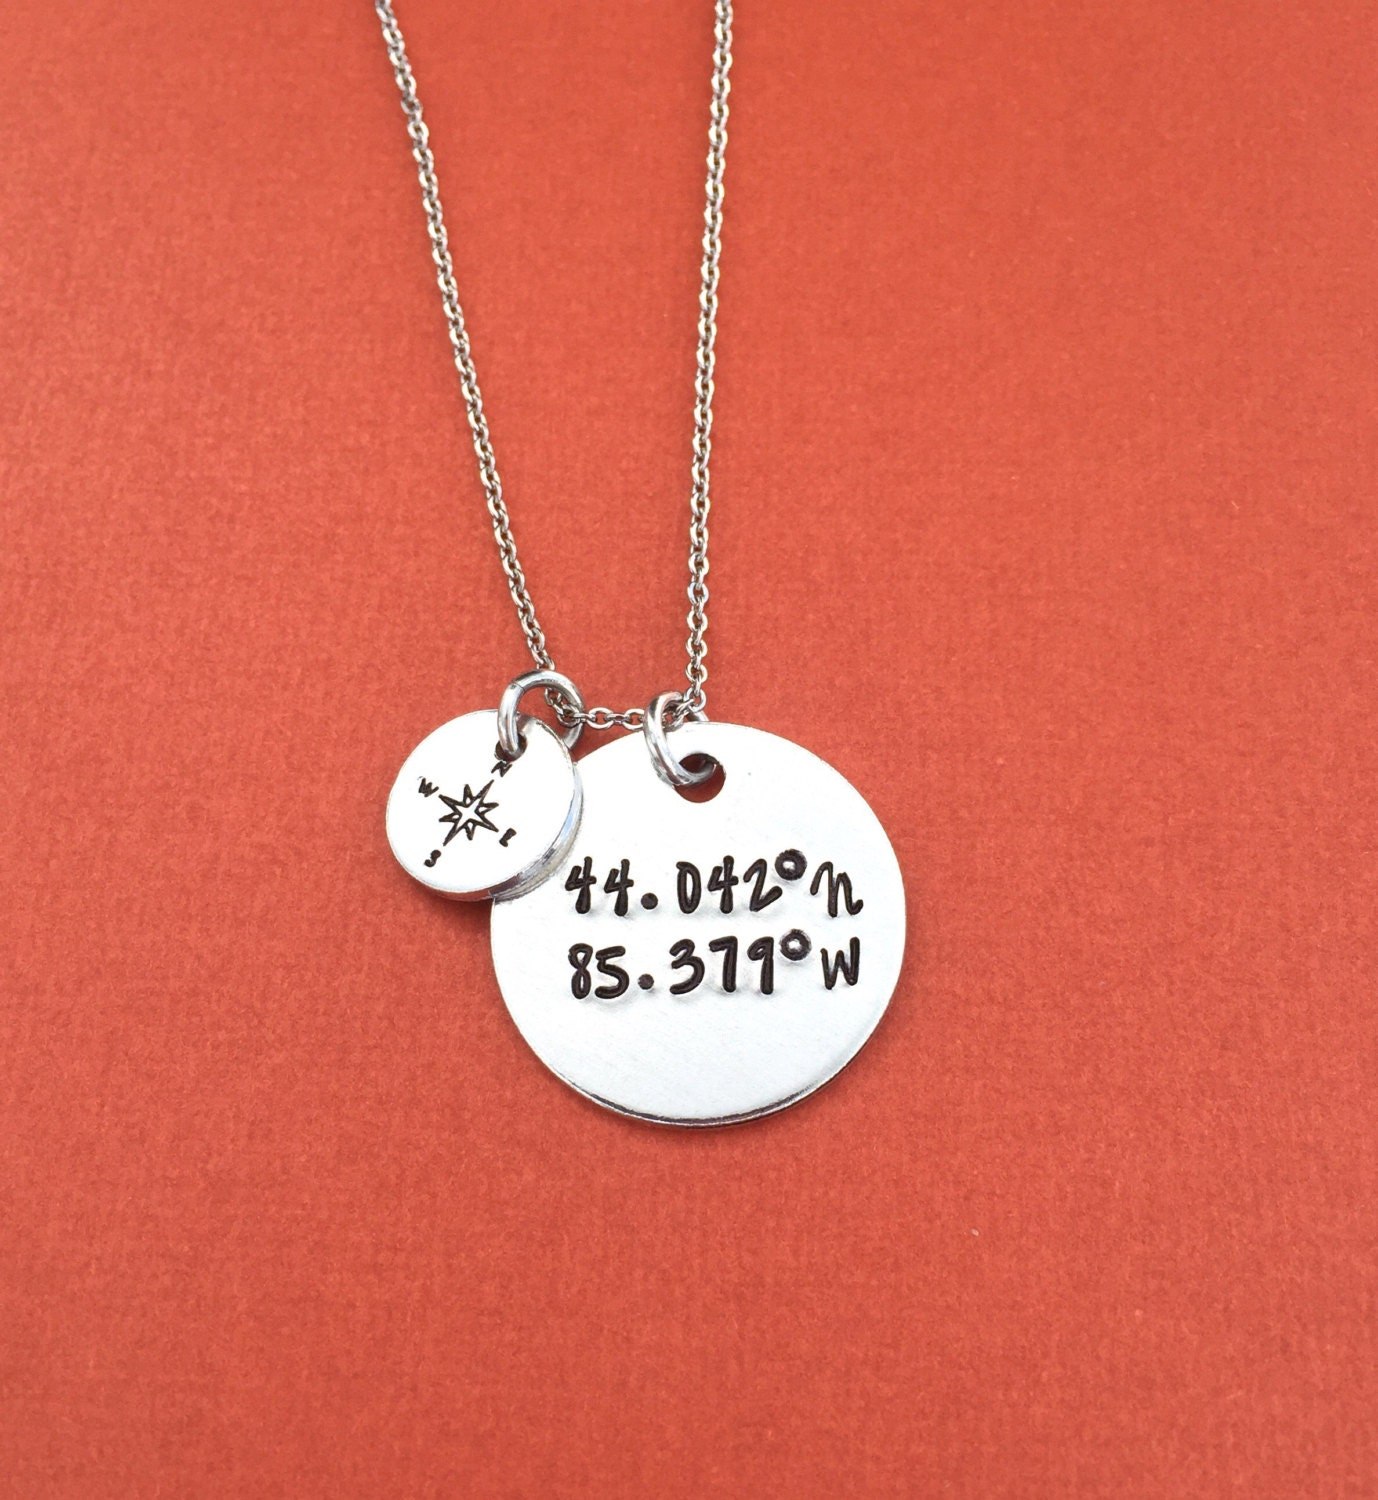 Gps Coordinates Necklace: Coordinates Hand Stamped Necklace Jewelry Grad Gift GPS